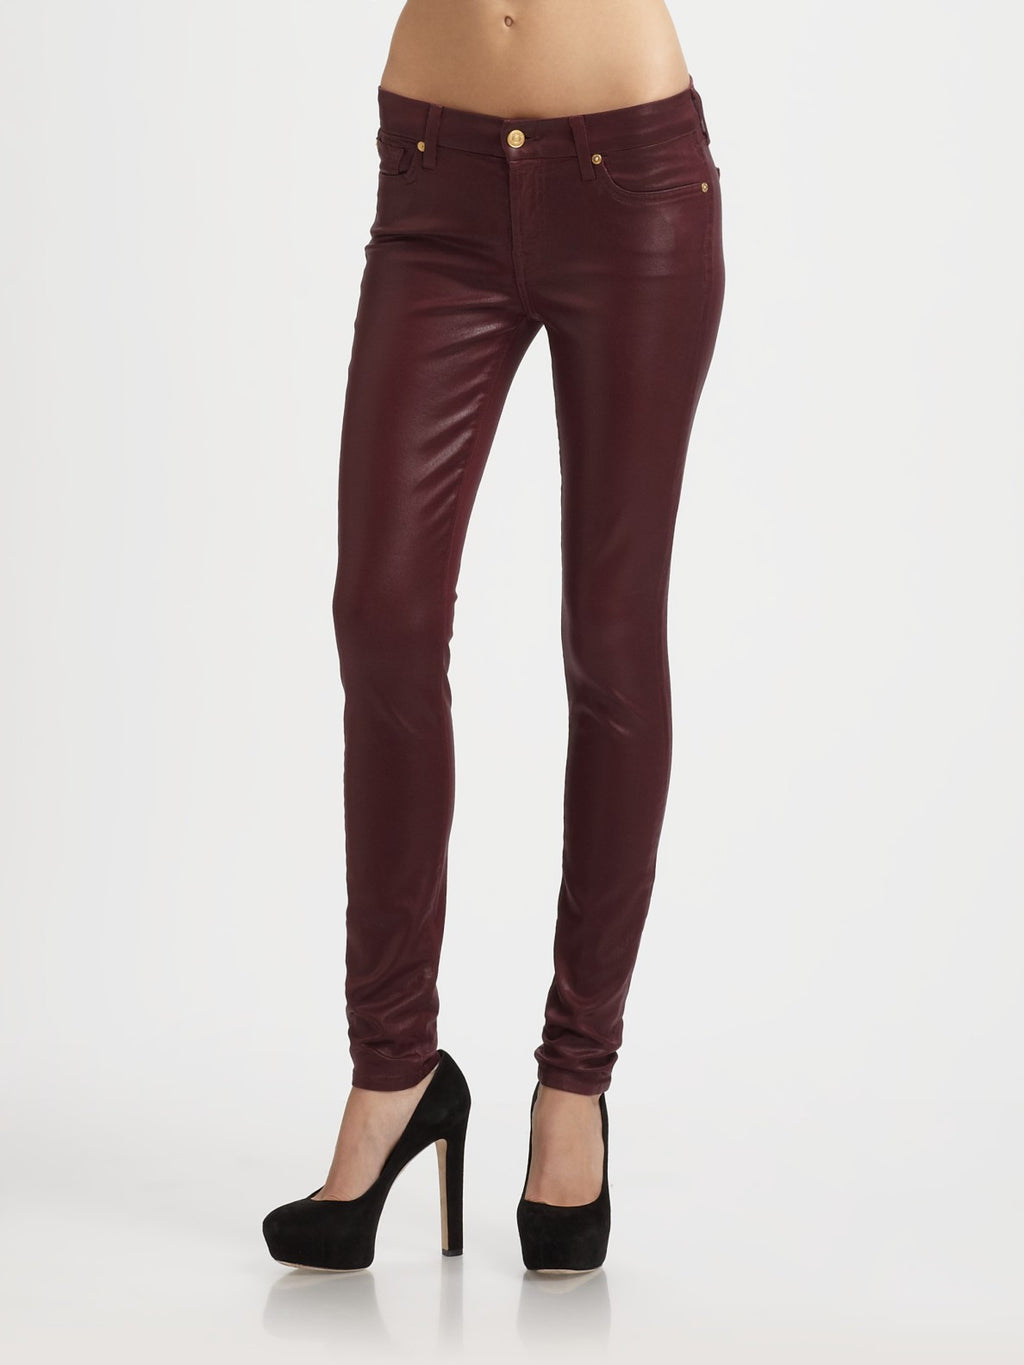 Seven For All Mankind Women's High Waist Skinny Jeans In Merlot Metallic Twill - Joyce's Closet  - 1